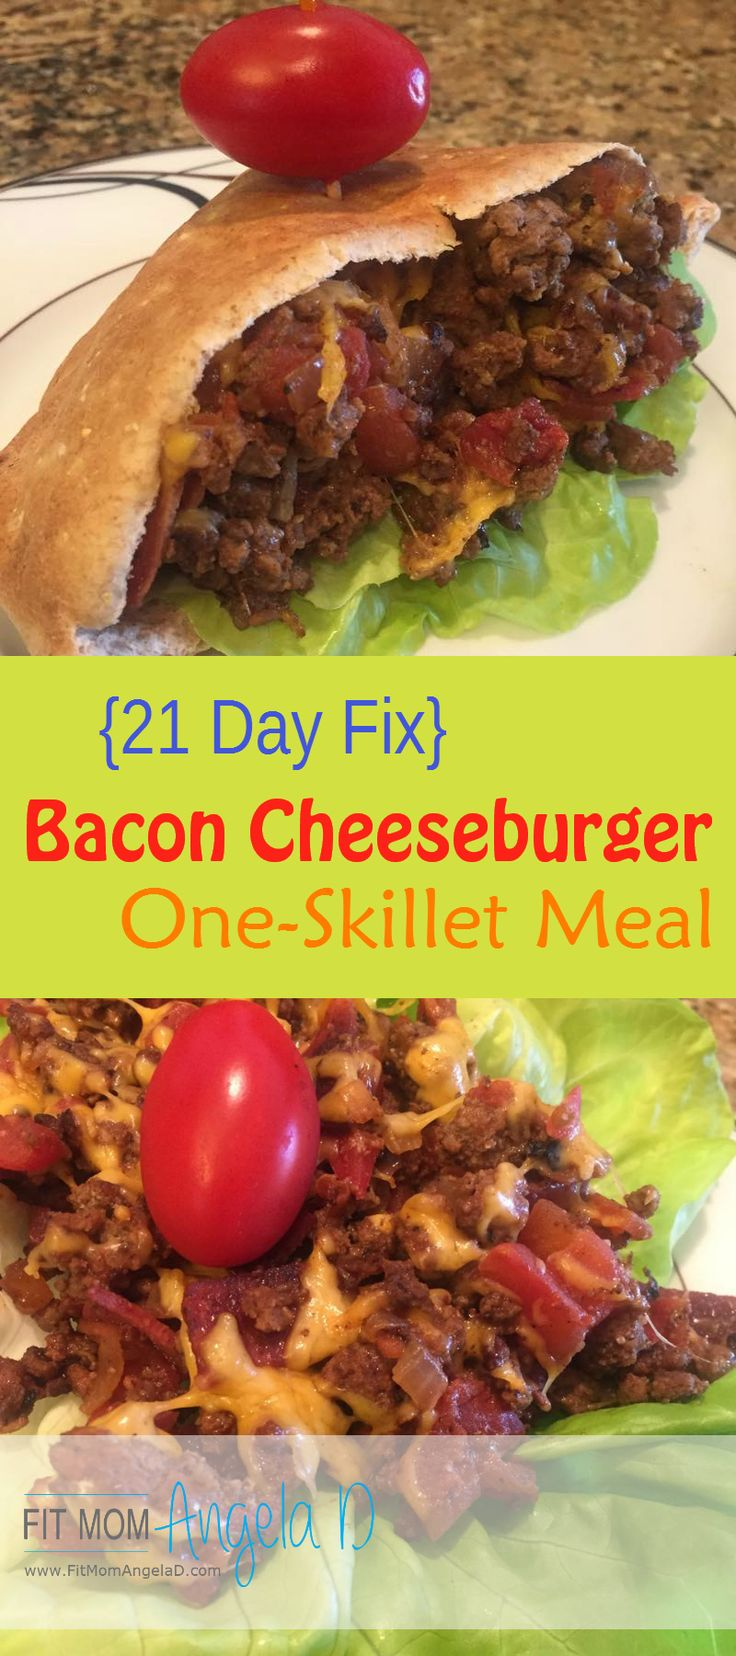 21 Day Fix Bacon Cheeseburger Skillet   Healthy Dinner   Clean eats   FitMomAngelaD.com   Husband approved dinner